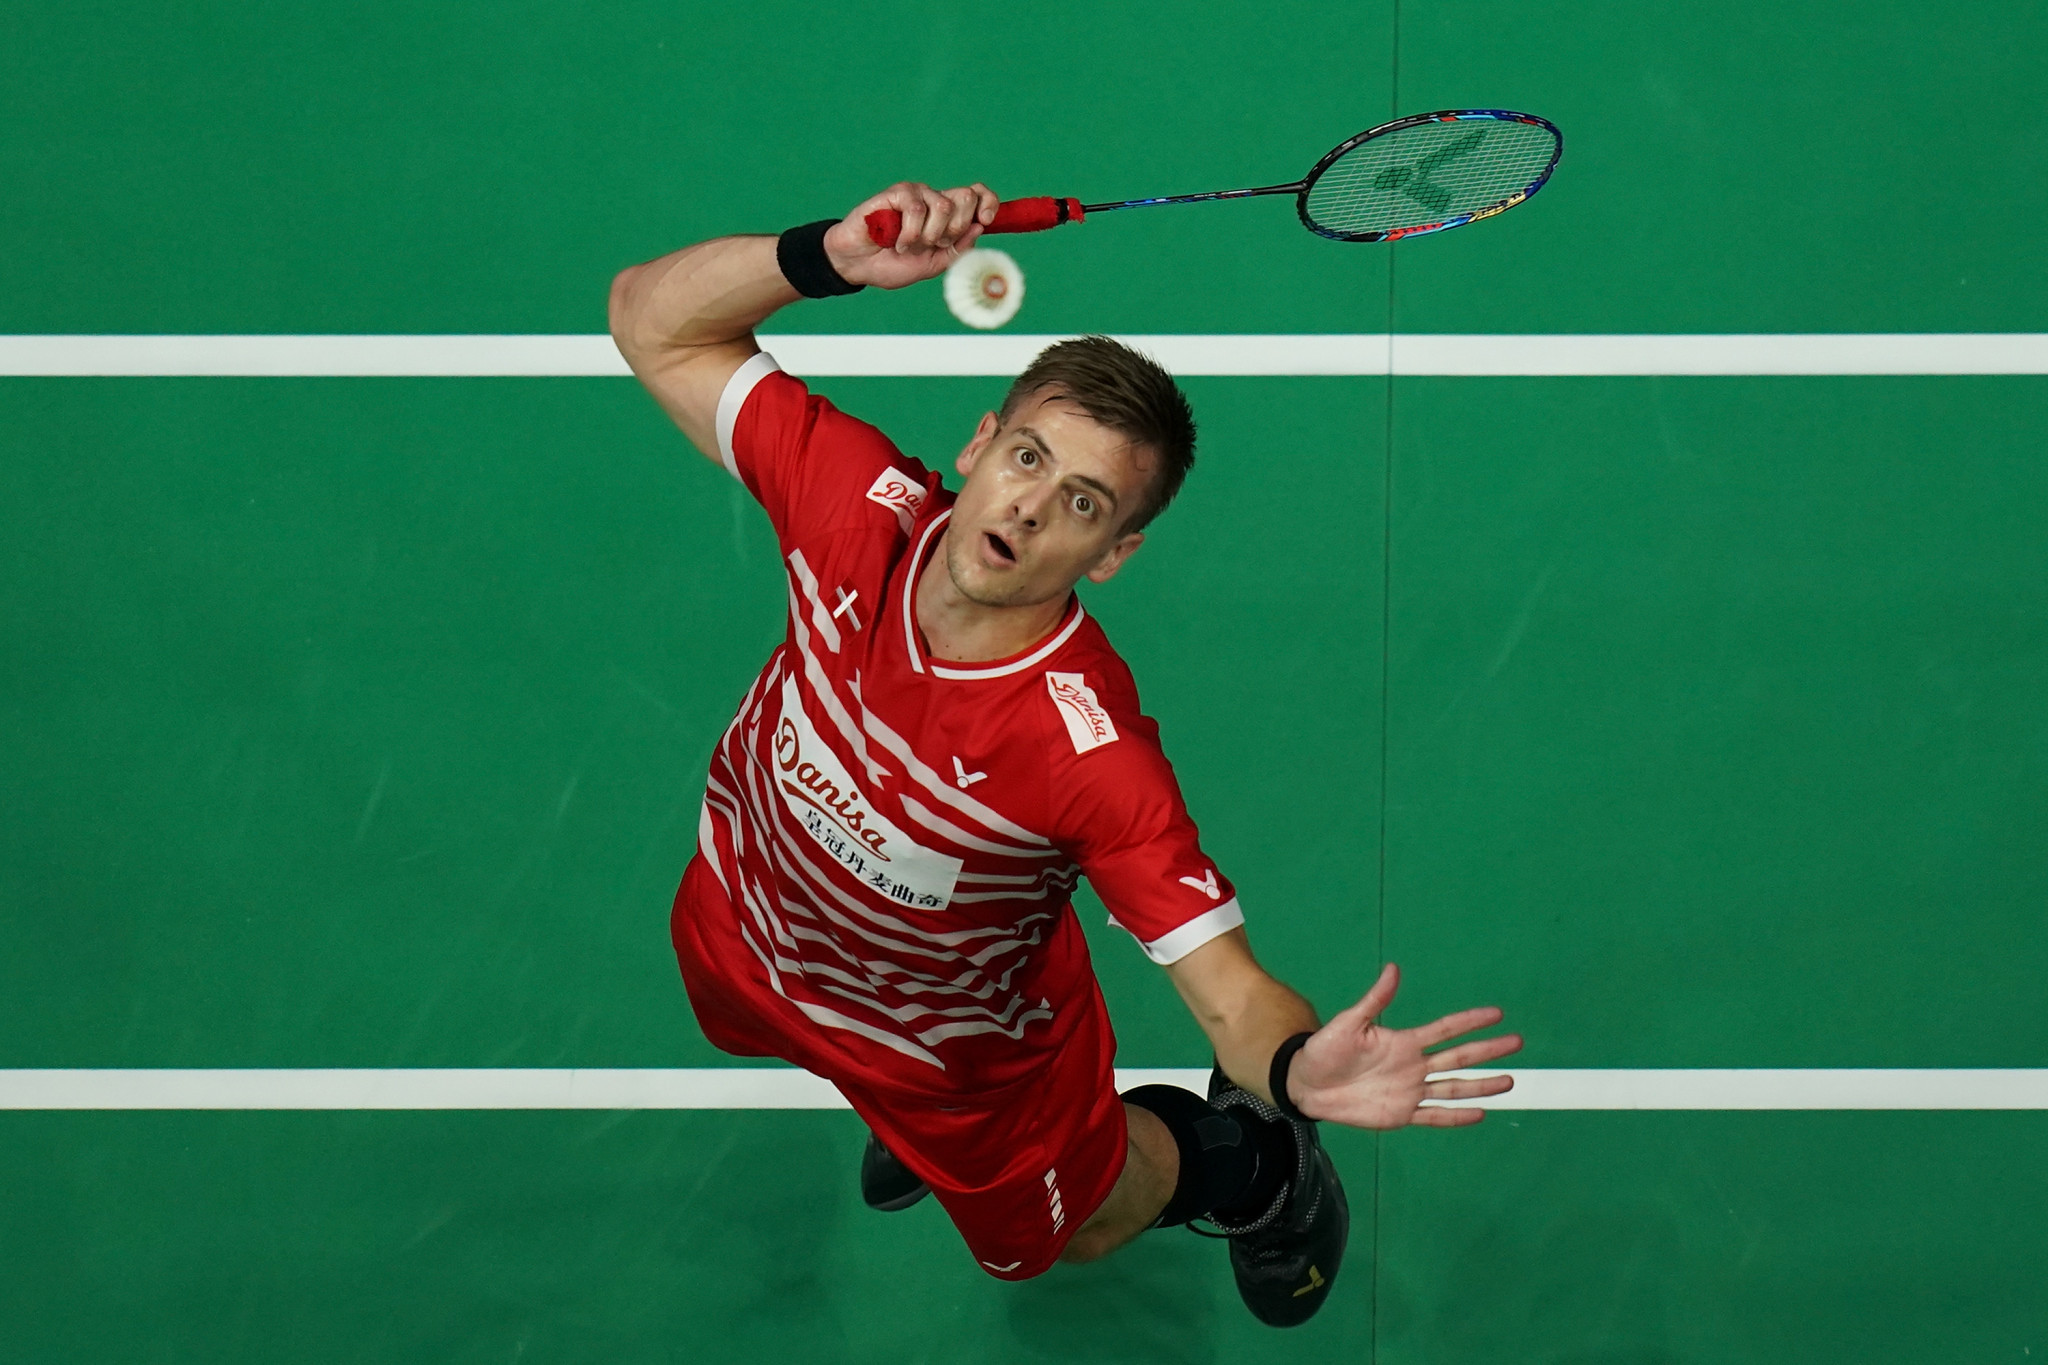 Denmark's Vittinghus out to justify top seeding with BWF Orléans Masters set to begin